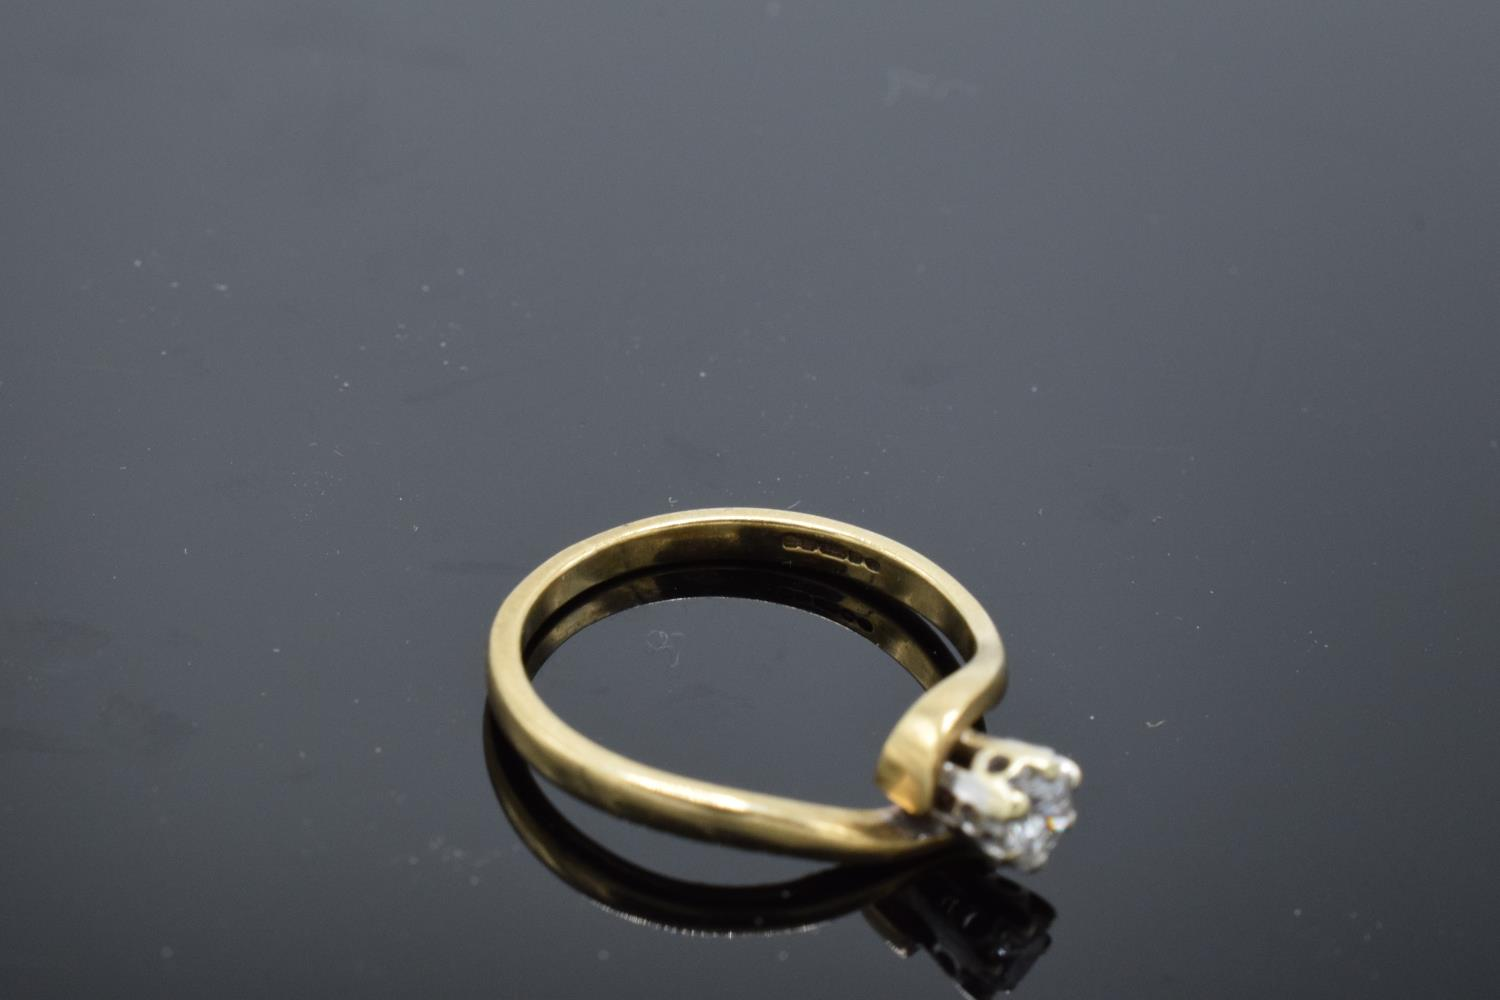 9ct gold ladies solitaire diamond ring. UK size L/M. 1.8 grams gross weight. Full hallmarks. - Image 4 of 4